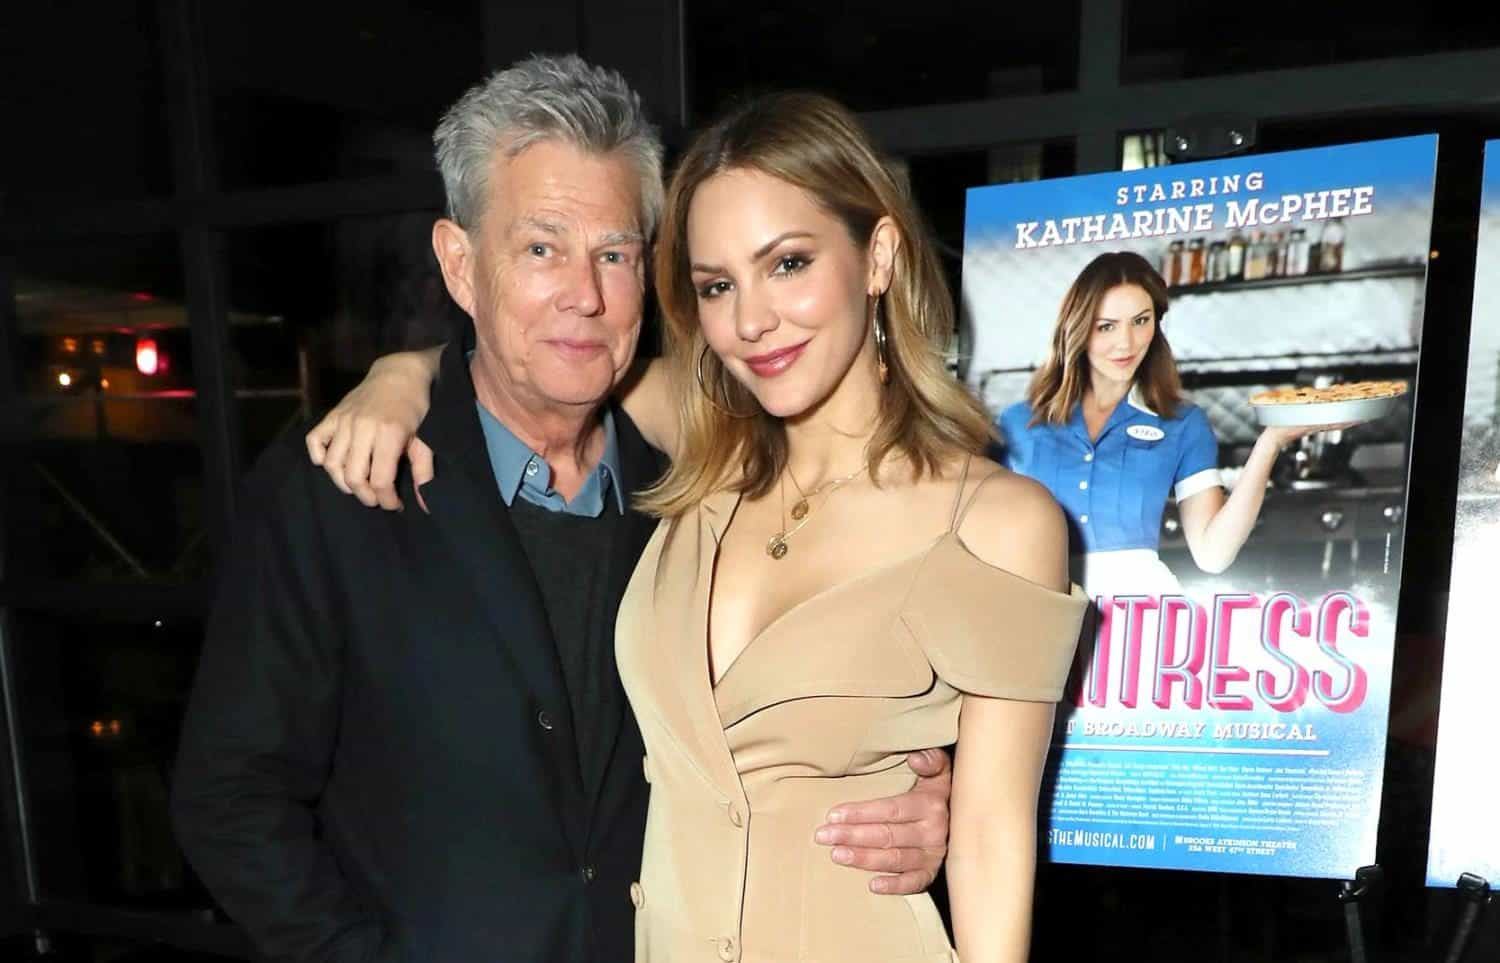 Katharine McPhee and David Foster News